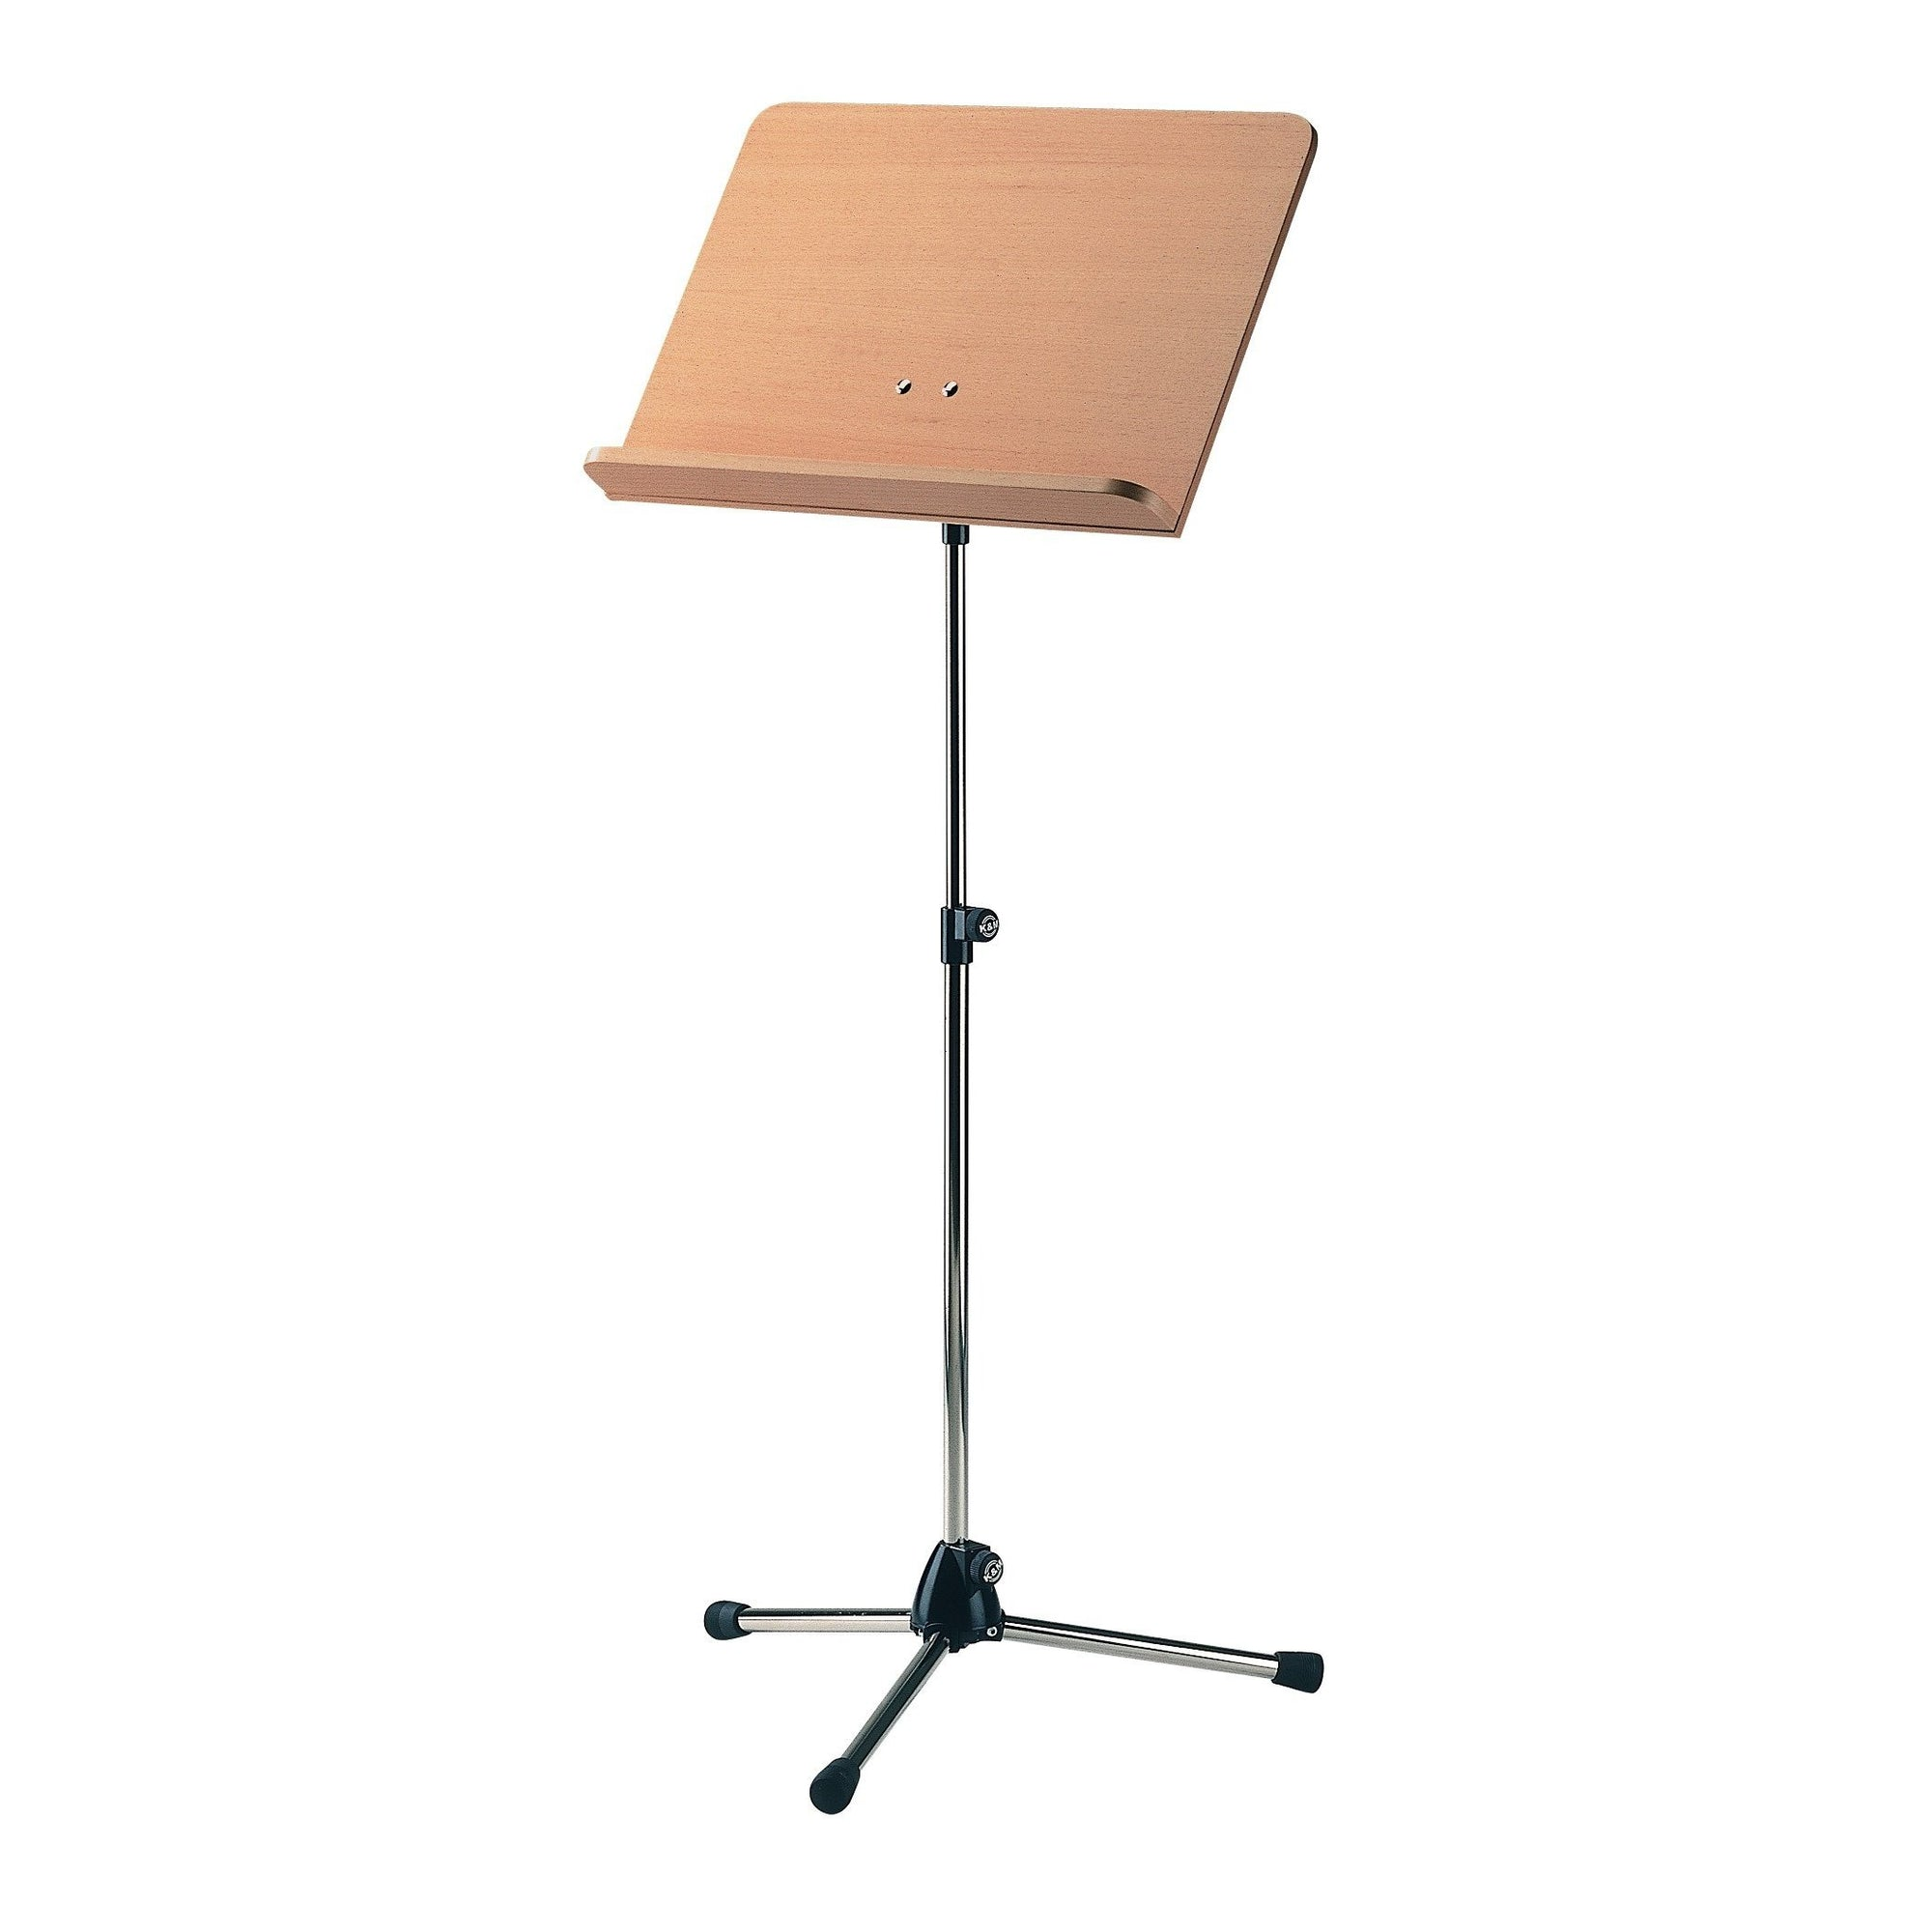 König & Meyer - 118/1 Topline Orchestra Music Stands-Music Stand-König & Meyer-Chrome Stand with Beech Wooden Desk-Music Elements